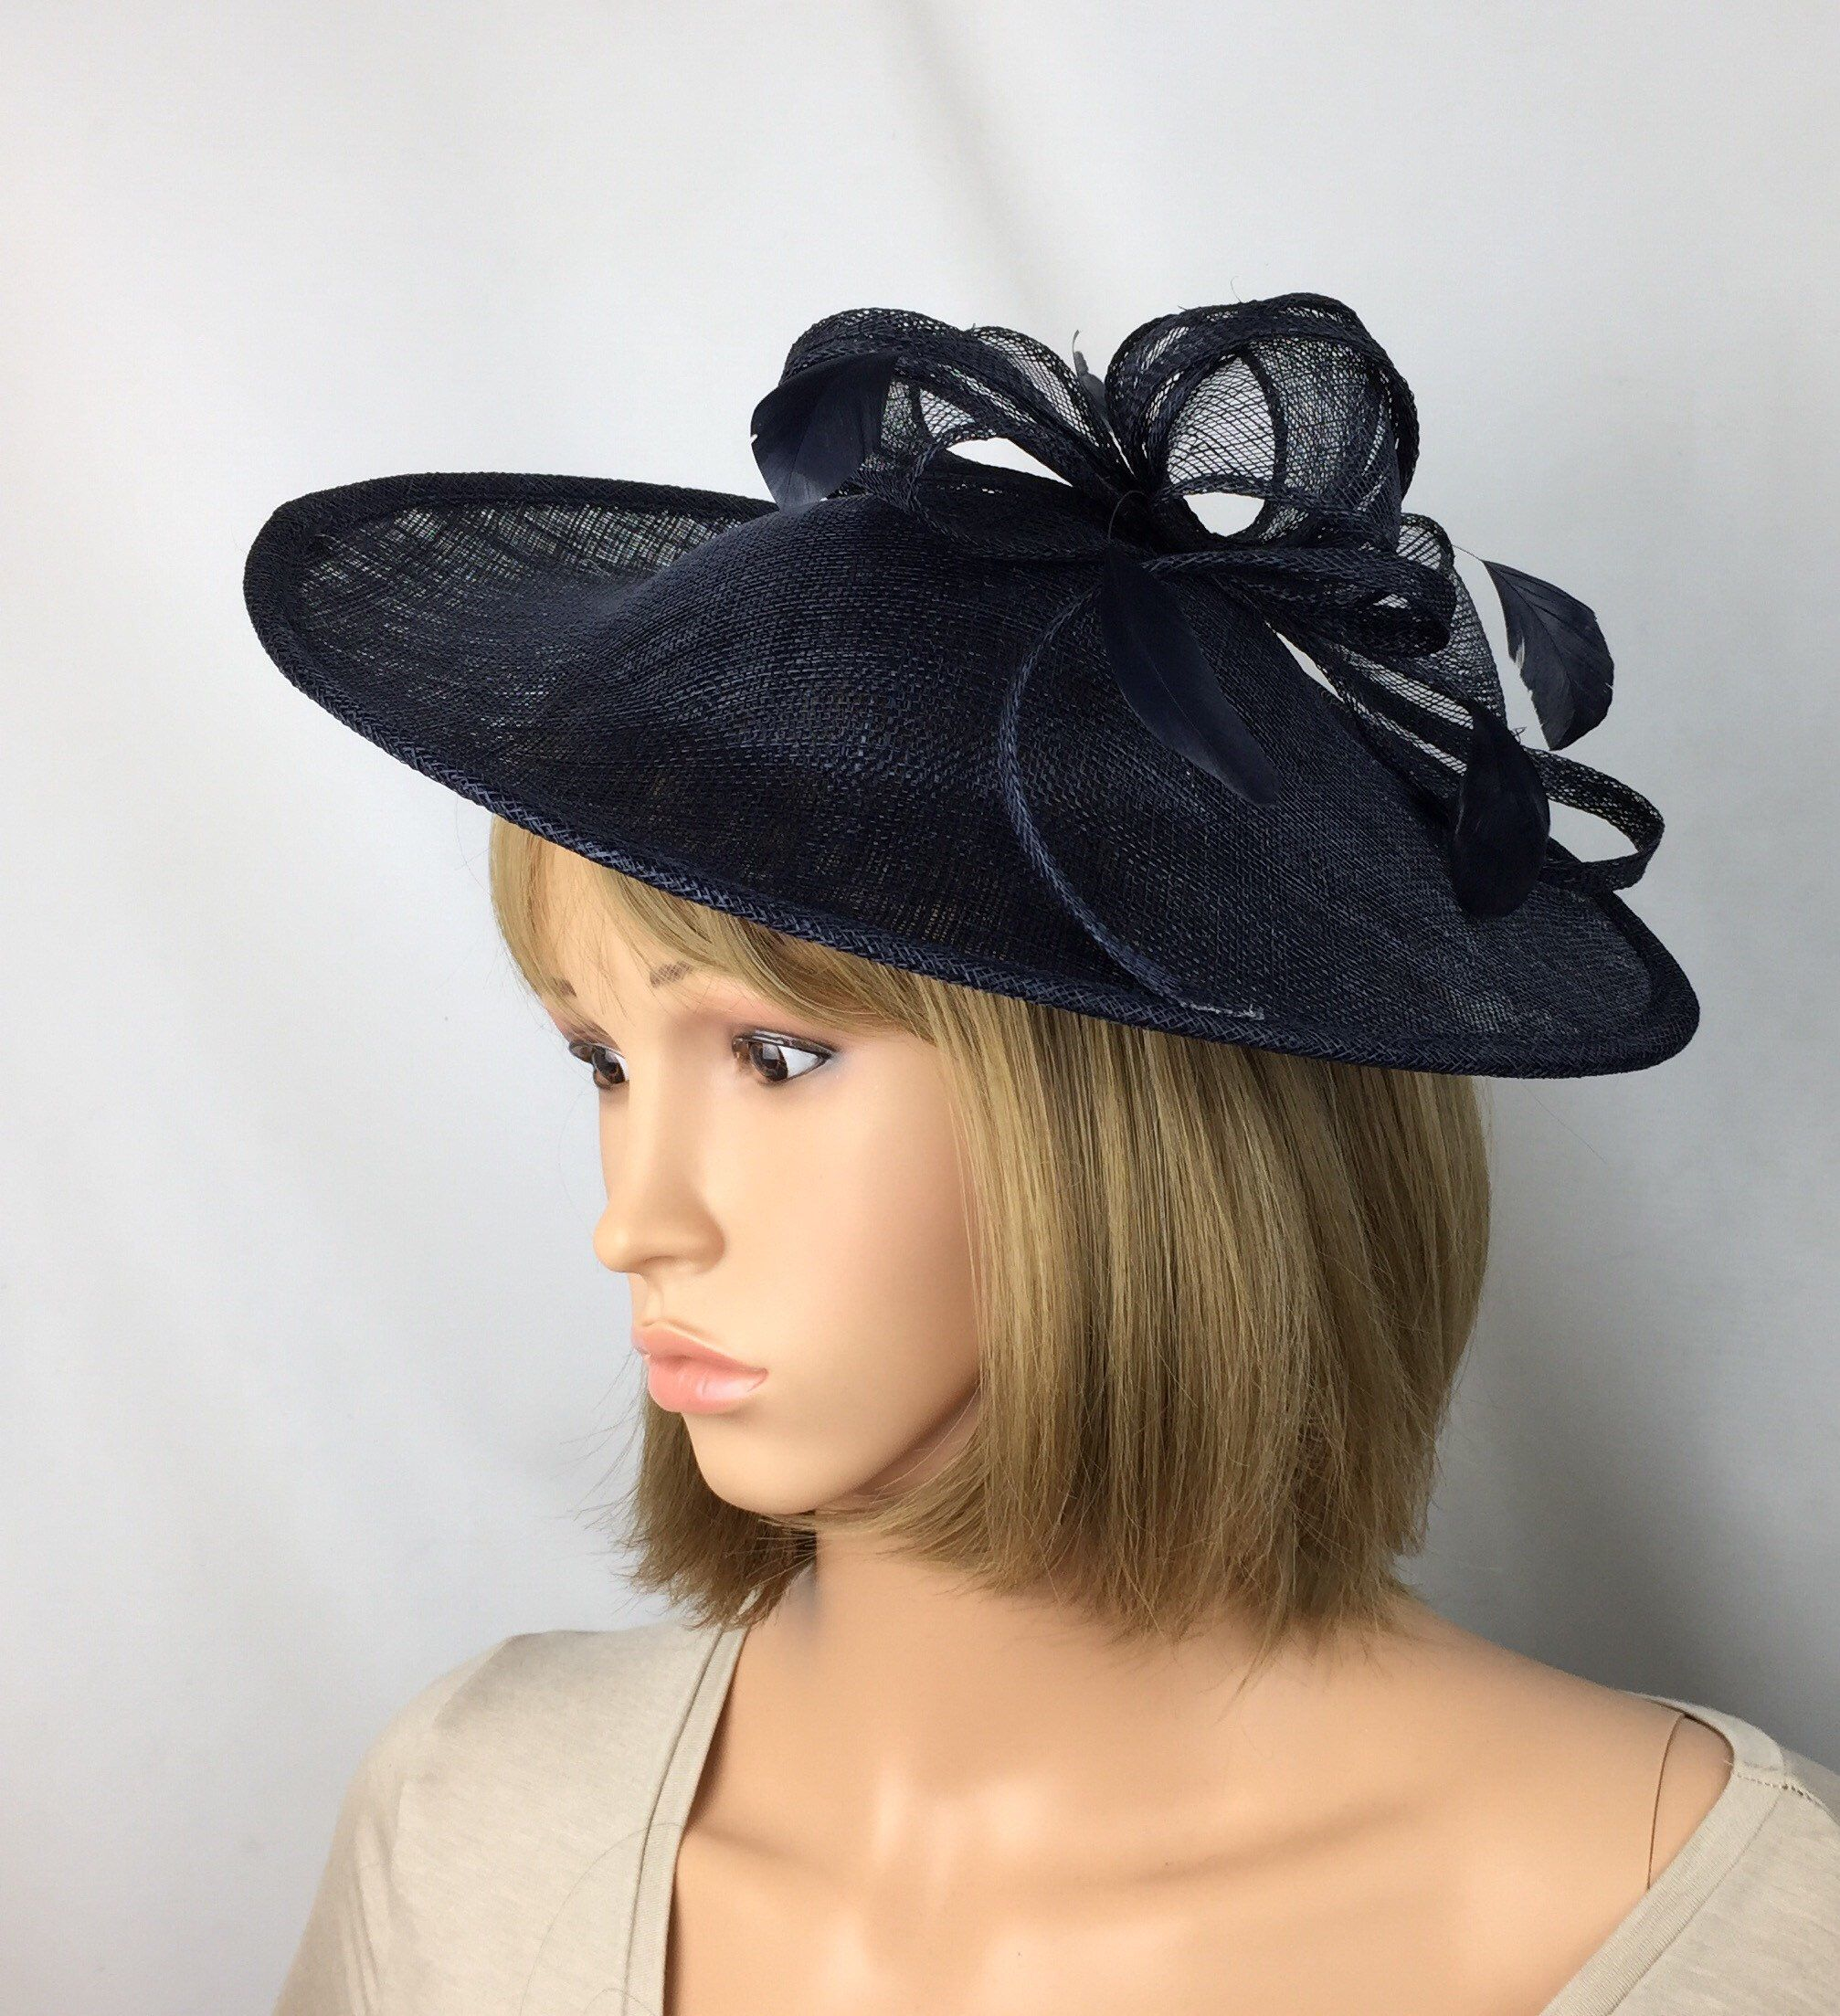 BLACK ASCOT WEDDING DISC HATINATOR HAT OCCASION FORMAL MOTHER OF THE BRIDE